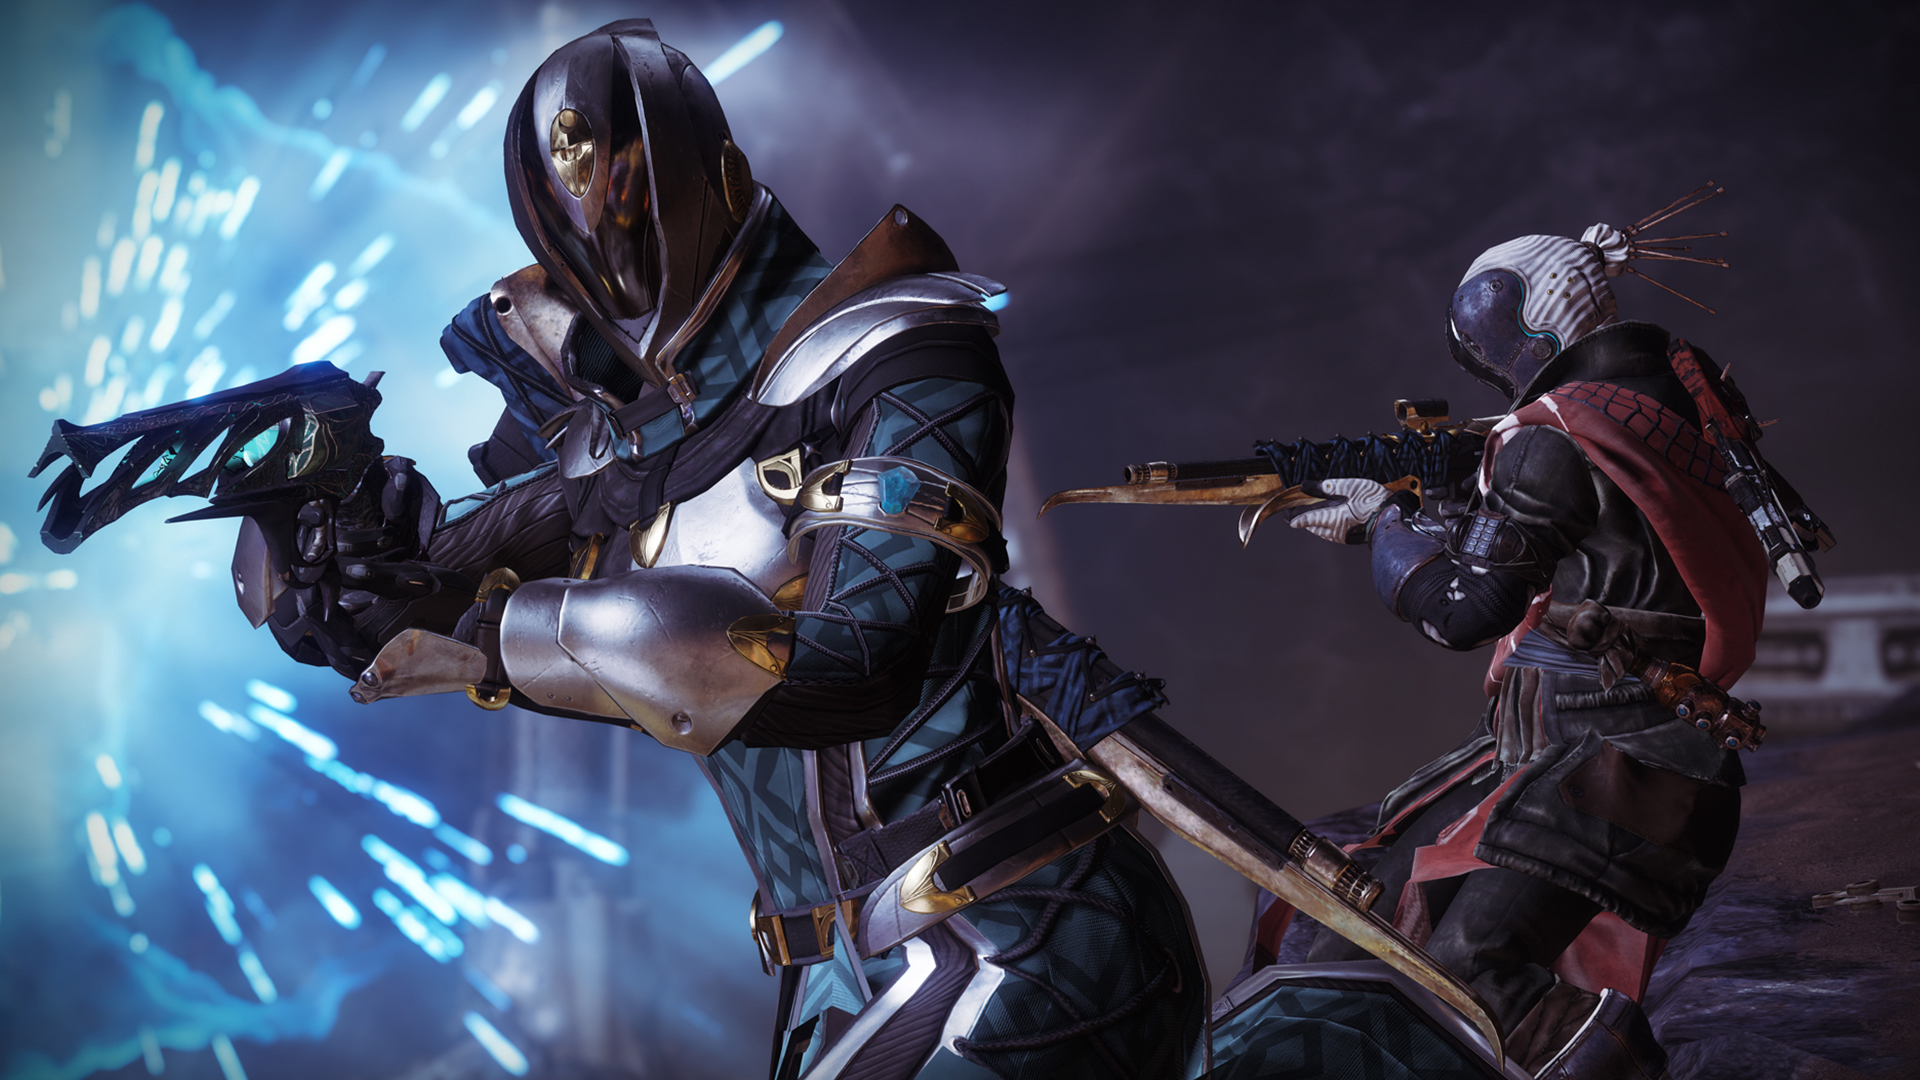 Destiny 2 guide: complete campaign walkthrough and guides - updated